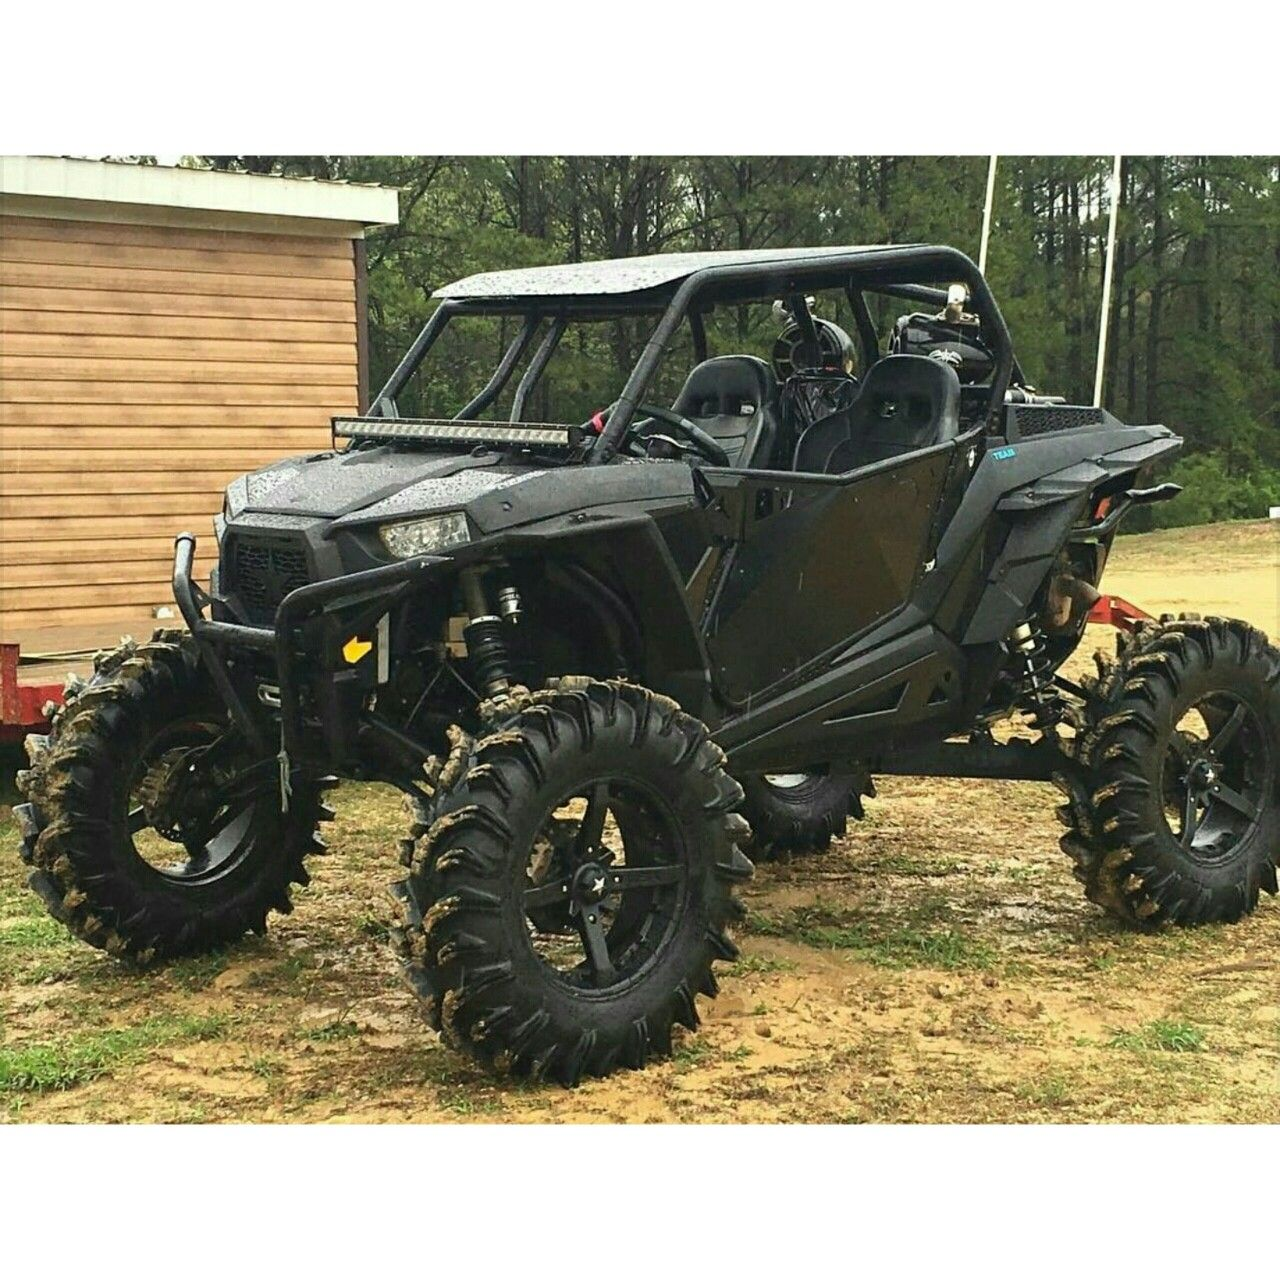 Best 25 rzr 1000 ideas on pinterest rzr 1000 accessories black on black murders and 1000 projects